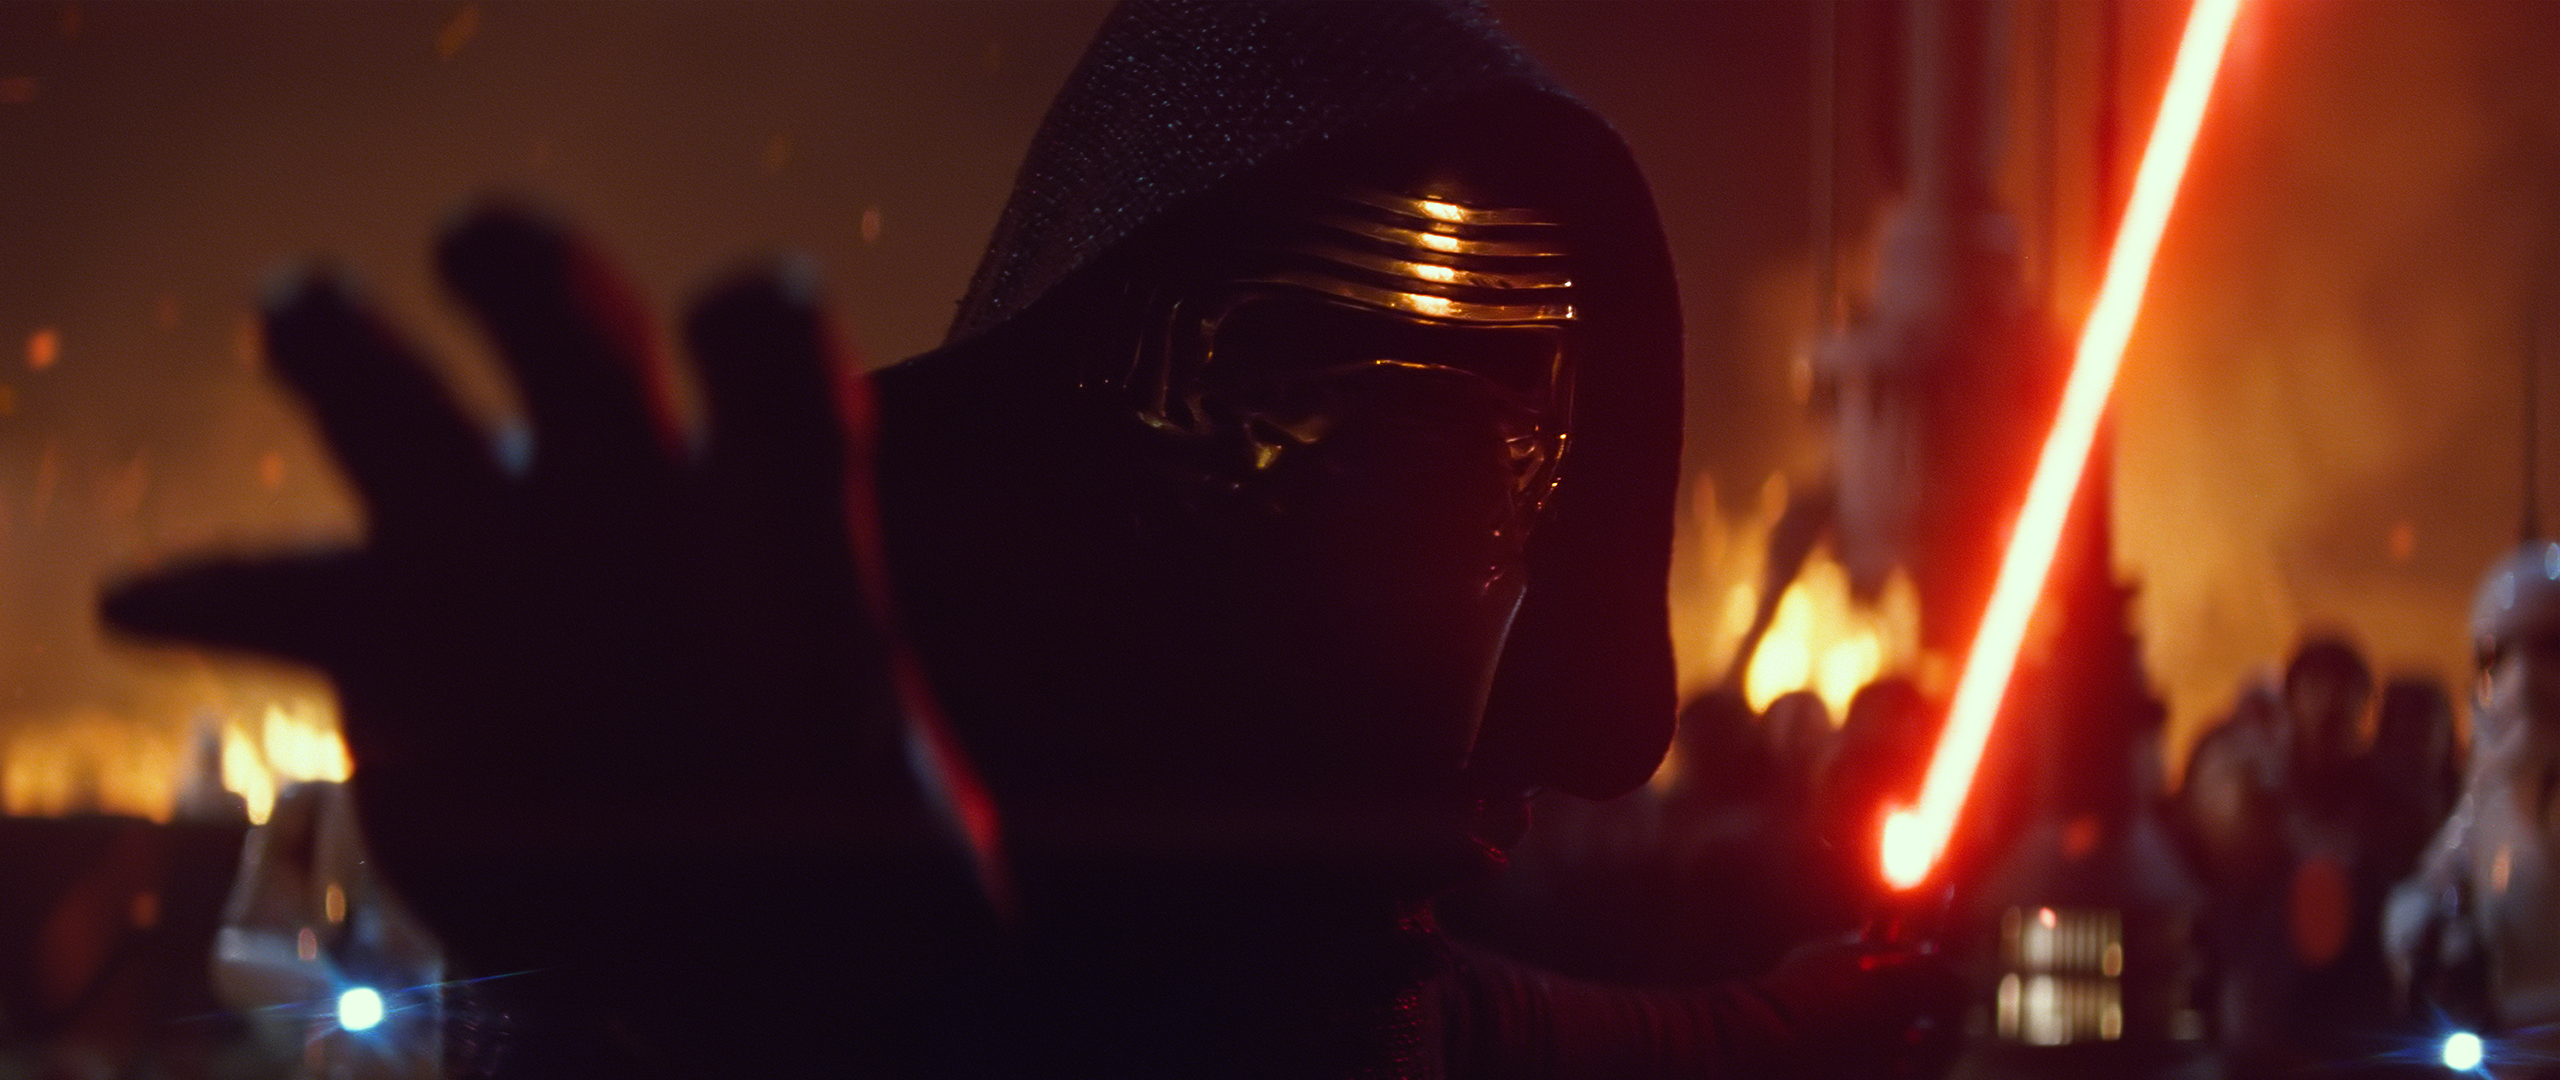 Star Wars Episode VII The Force Awakens Wallpapers HD